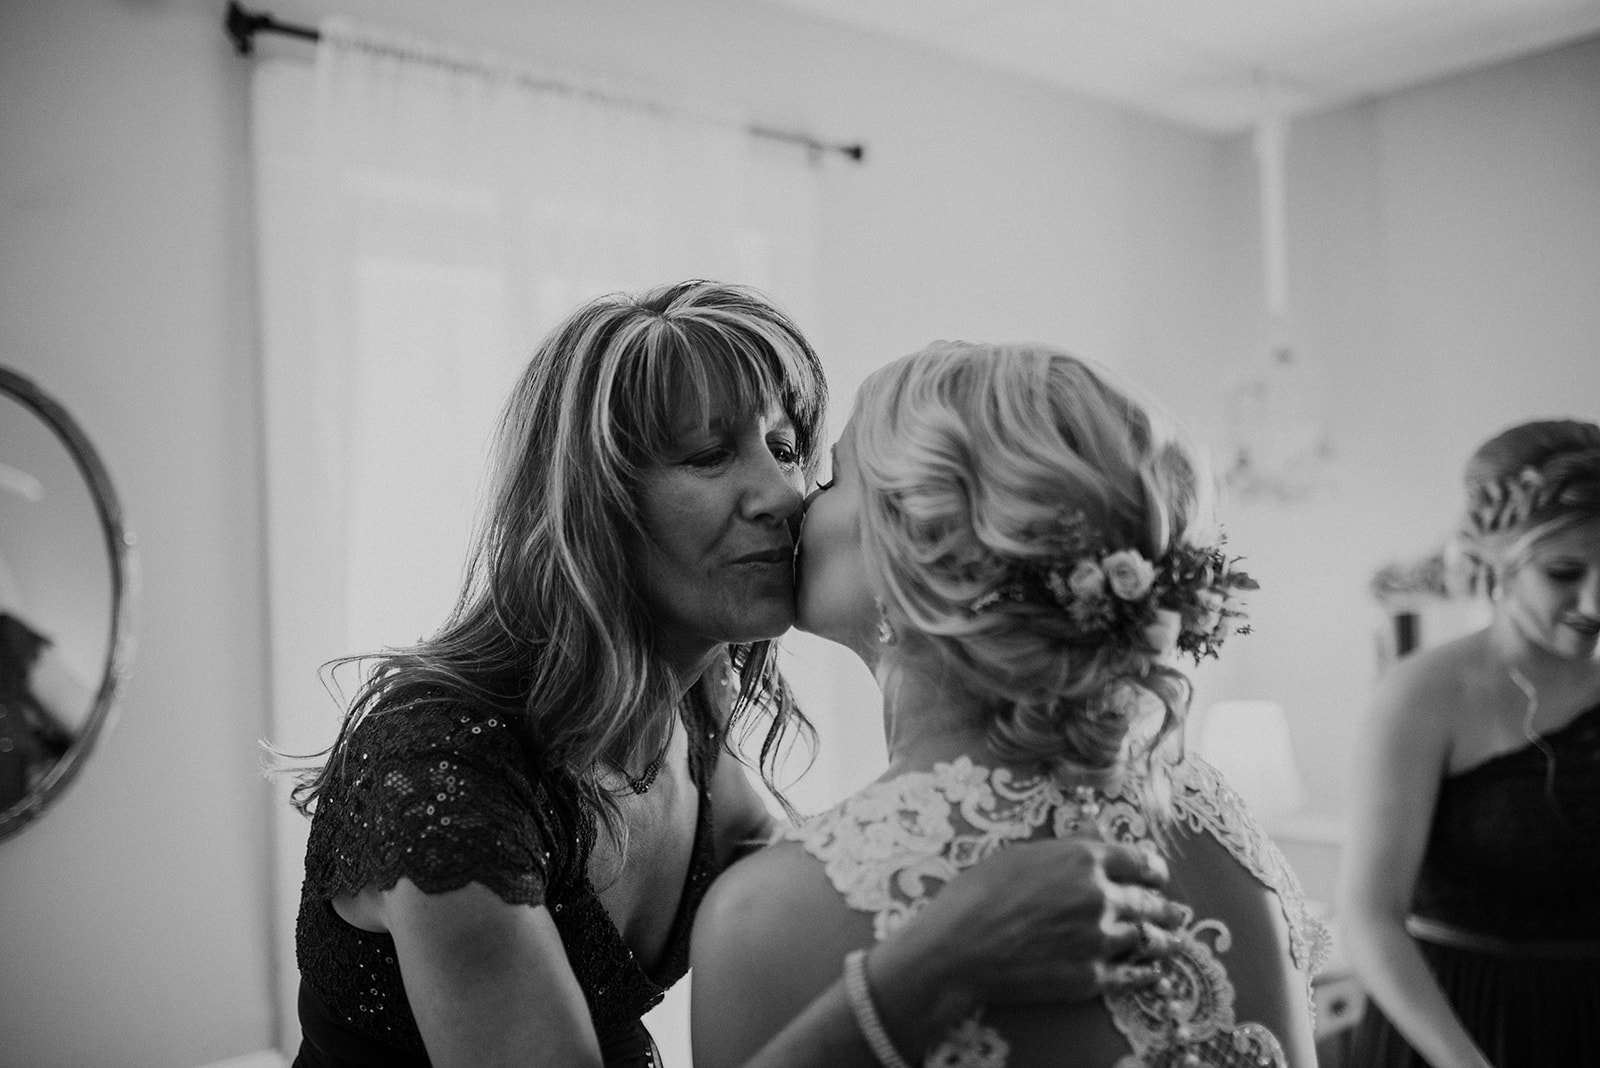 overthevineswisconsinwedding_0424.jpg